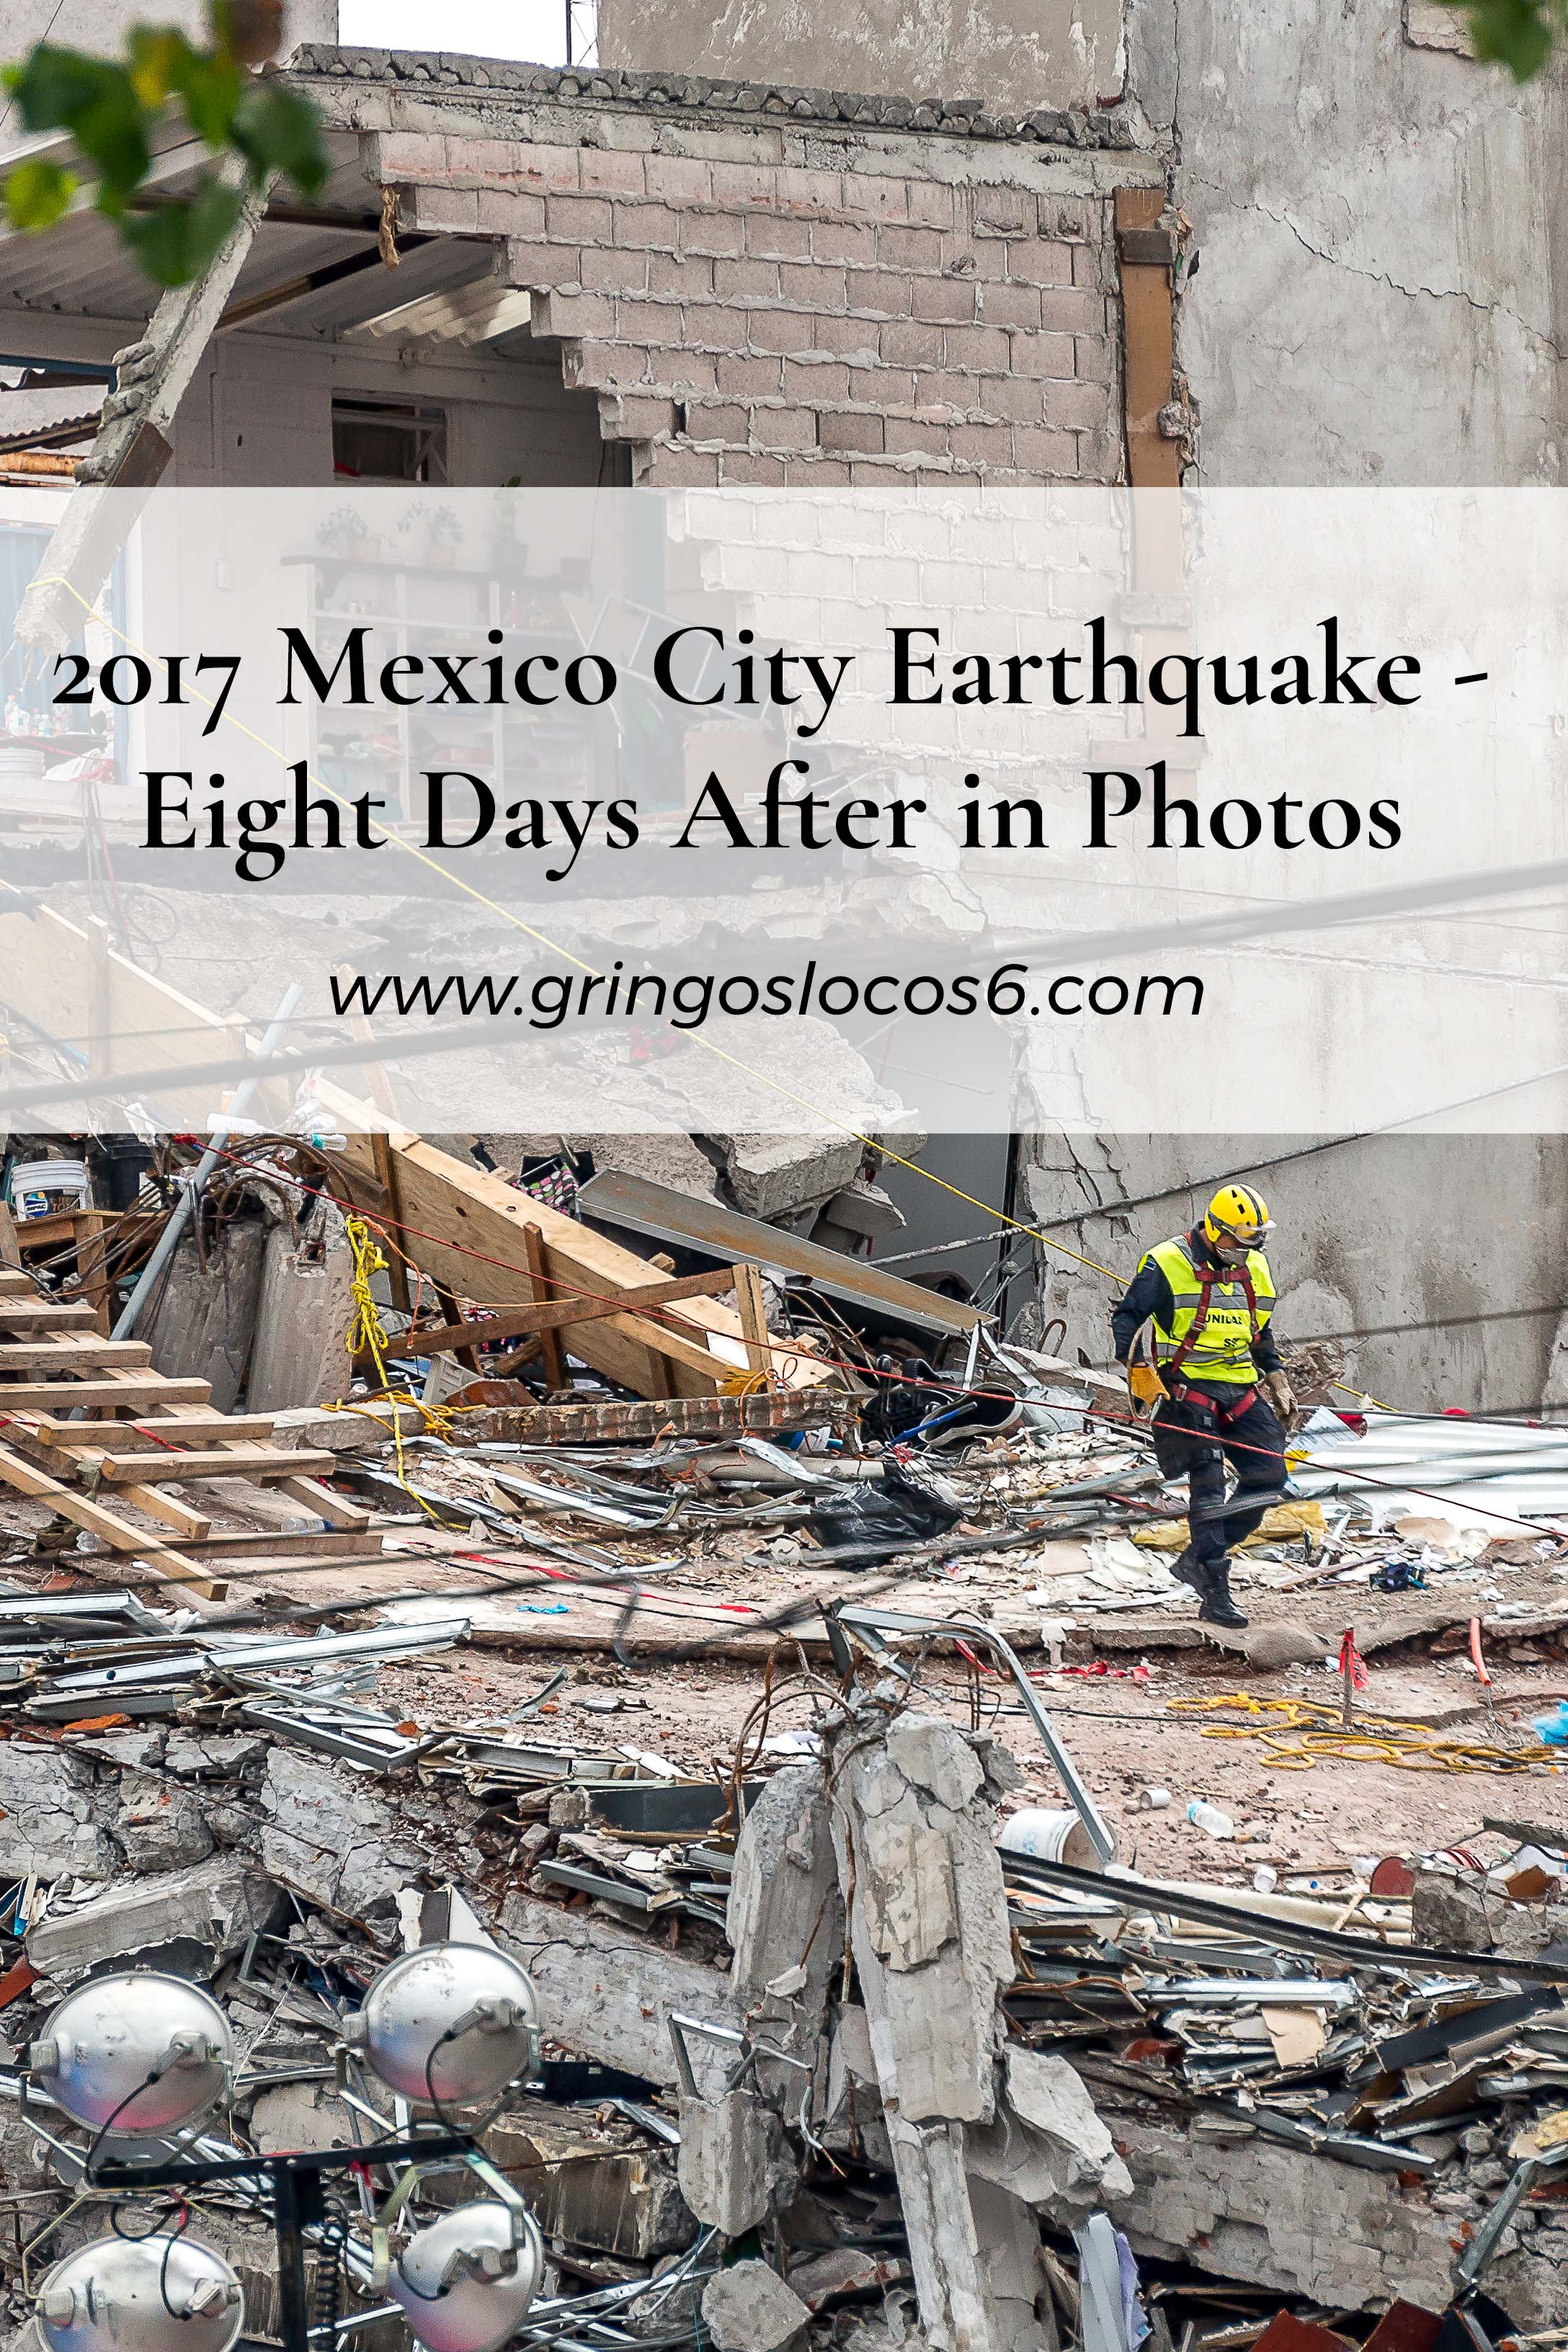 We had a medical trip scheduled a week after the Mexico City earthquake. Some of the destruction I saw was incomprehensible. For me, this was all new.